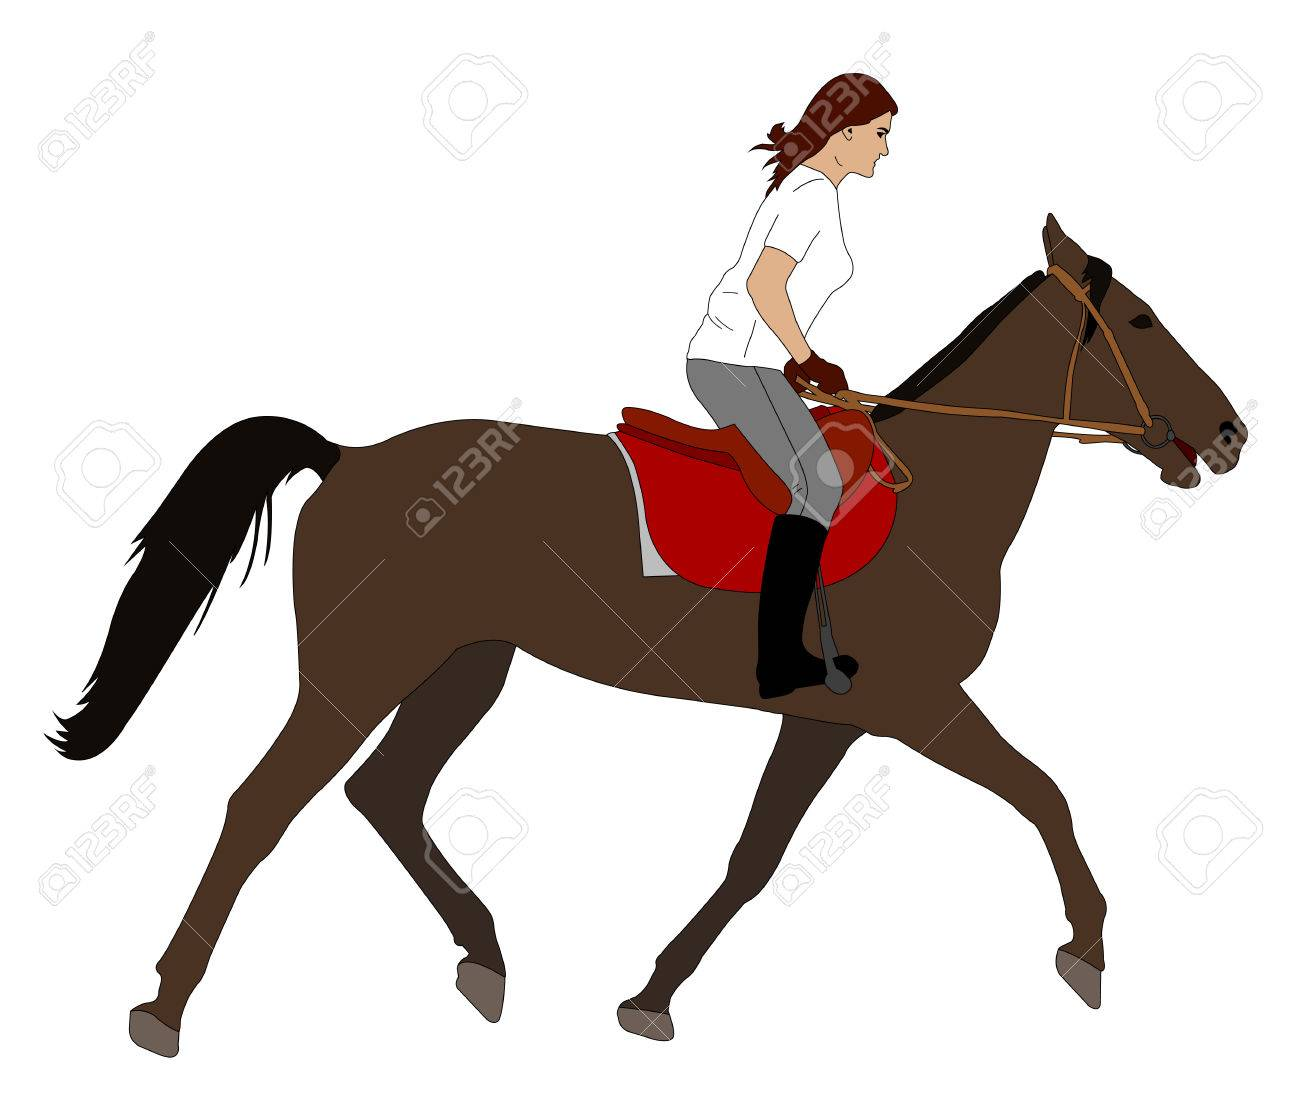 Woman Riding Horse Illustration Vector Royalty Free Cliparts Vectors And Stock Illustration Image 66584016